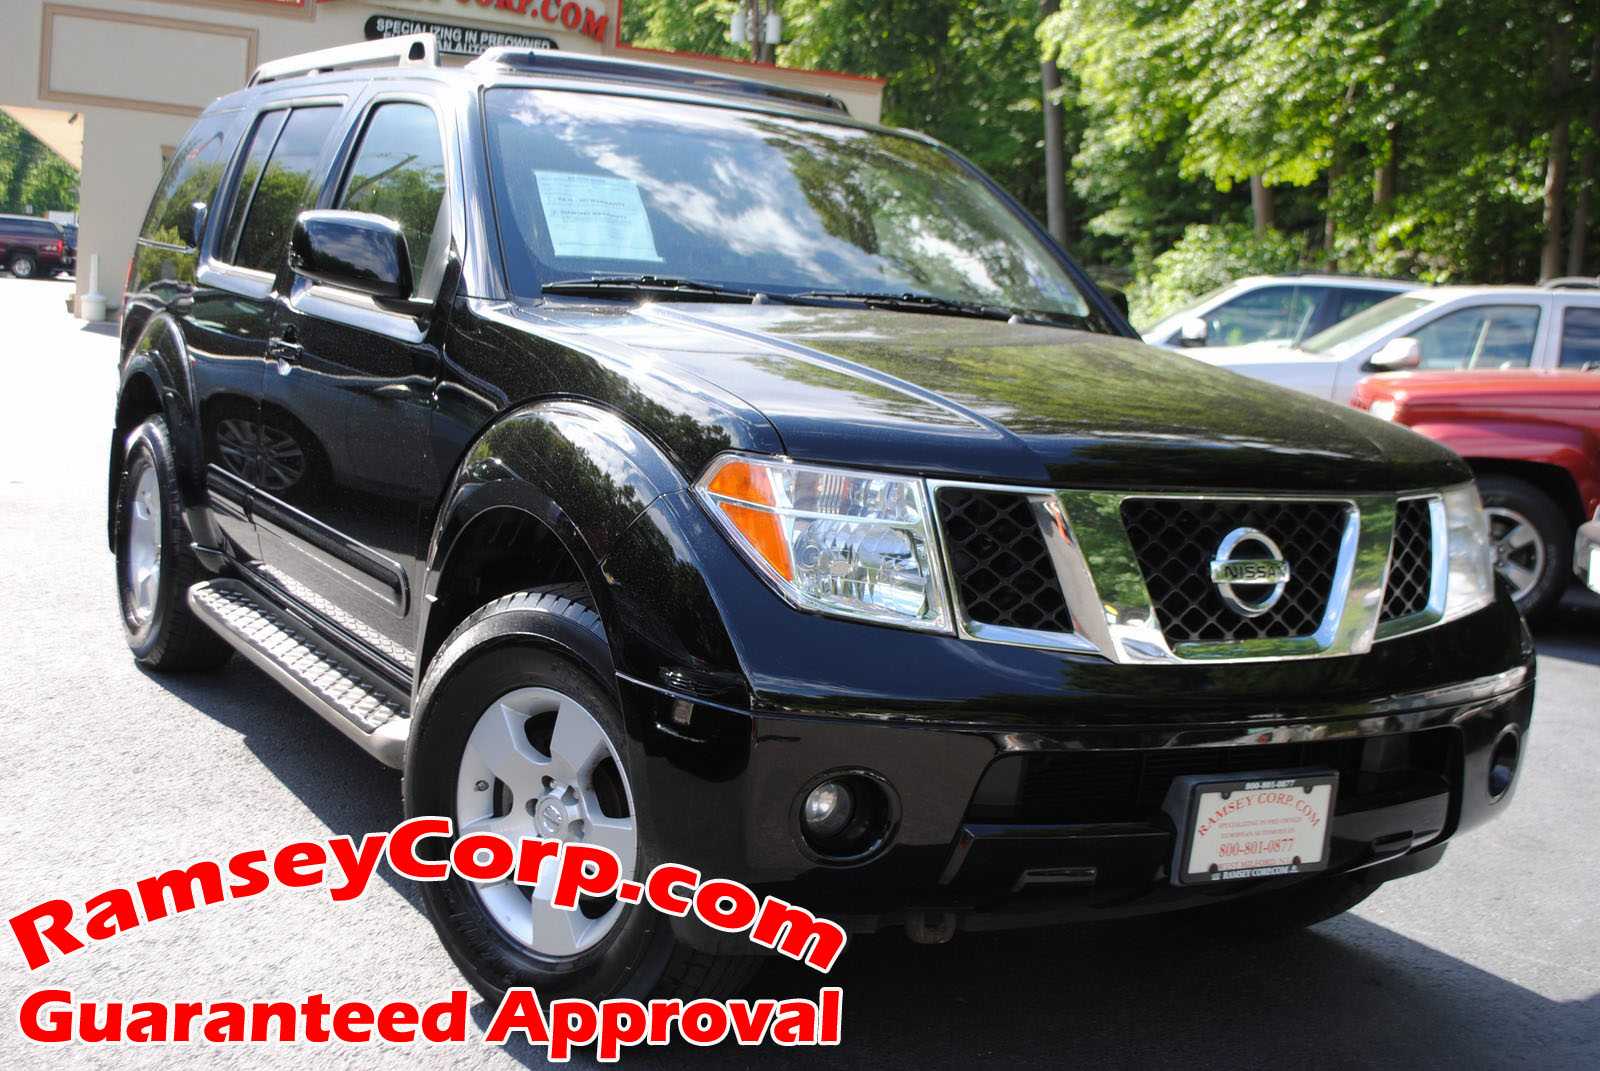 Used 2007 Nissan Pathfinder For Sale at Ramsey Corp  | VIN